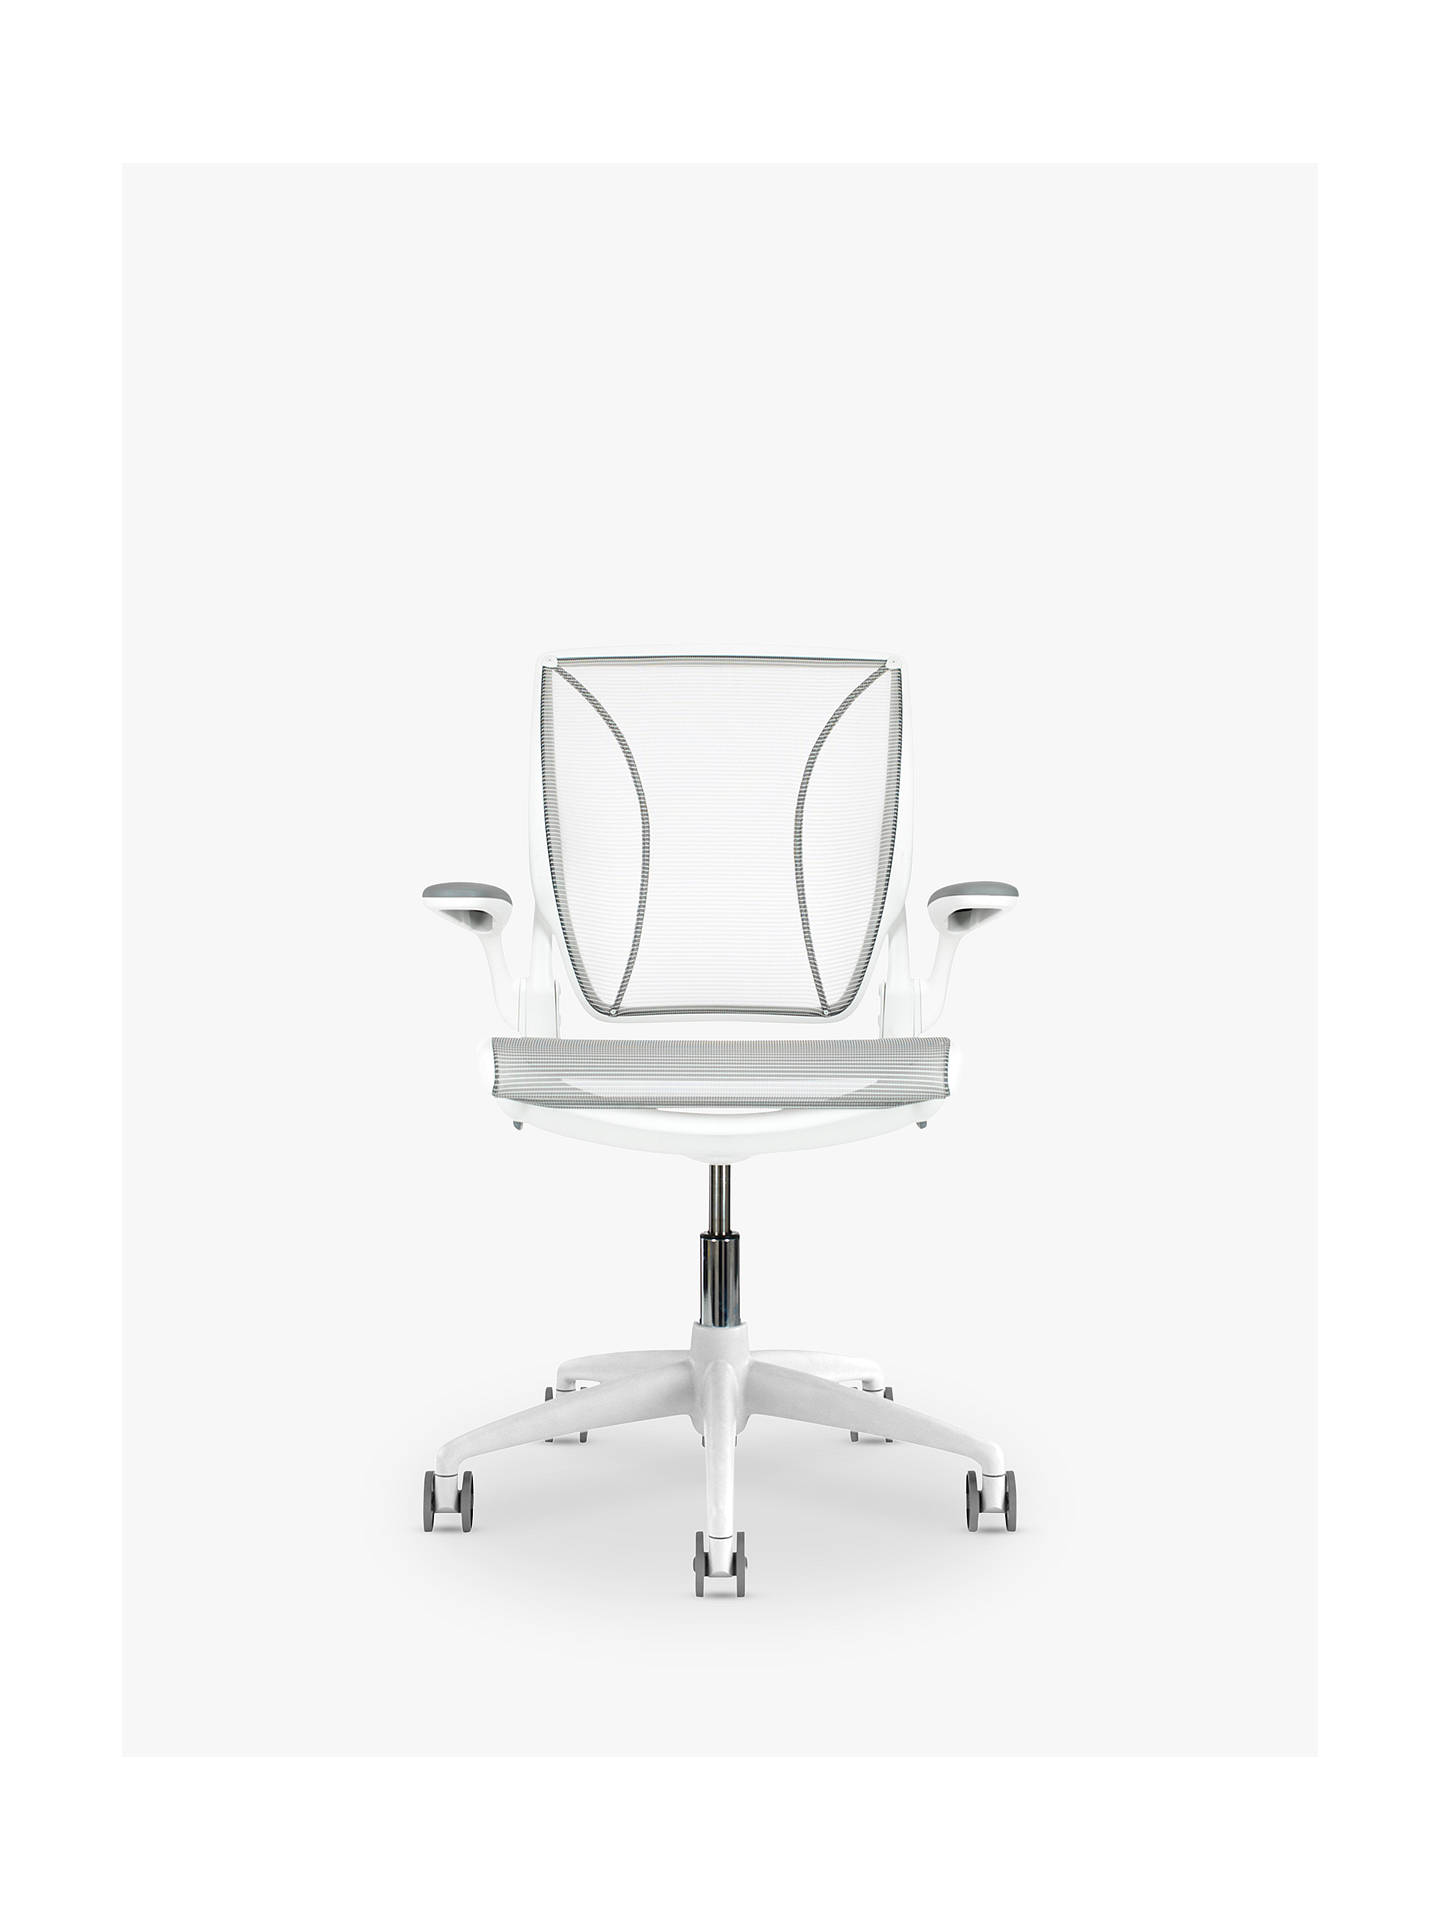 Humanscale diffrient world office chair white at john lewis partners for John lewis home design service reviews